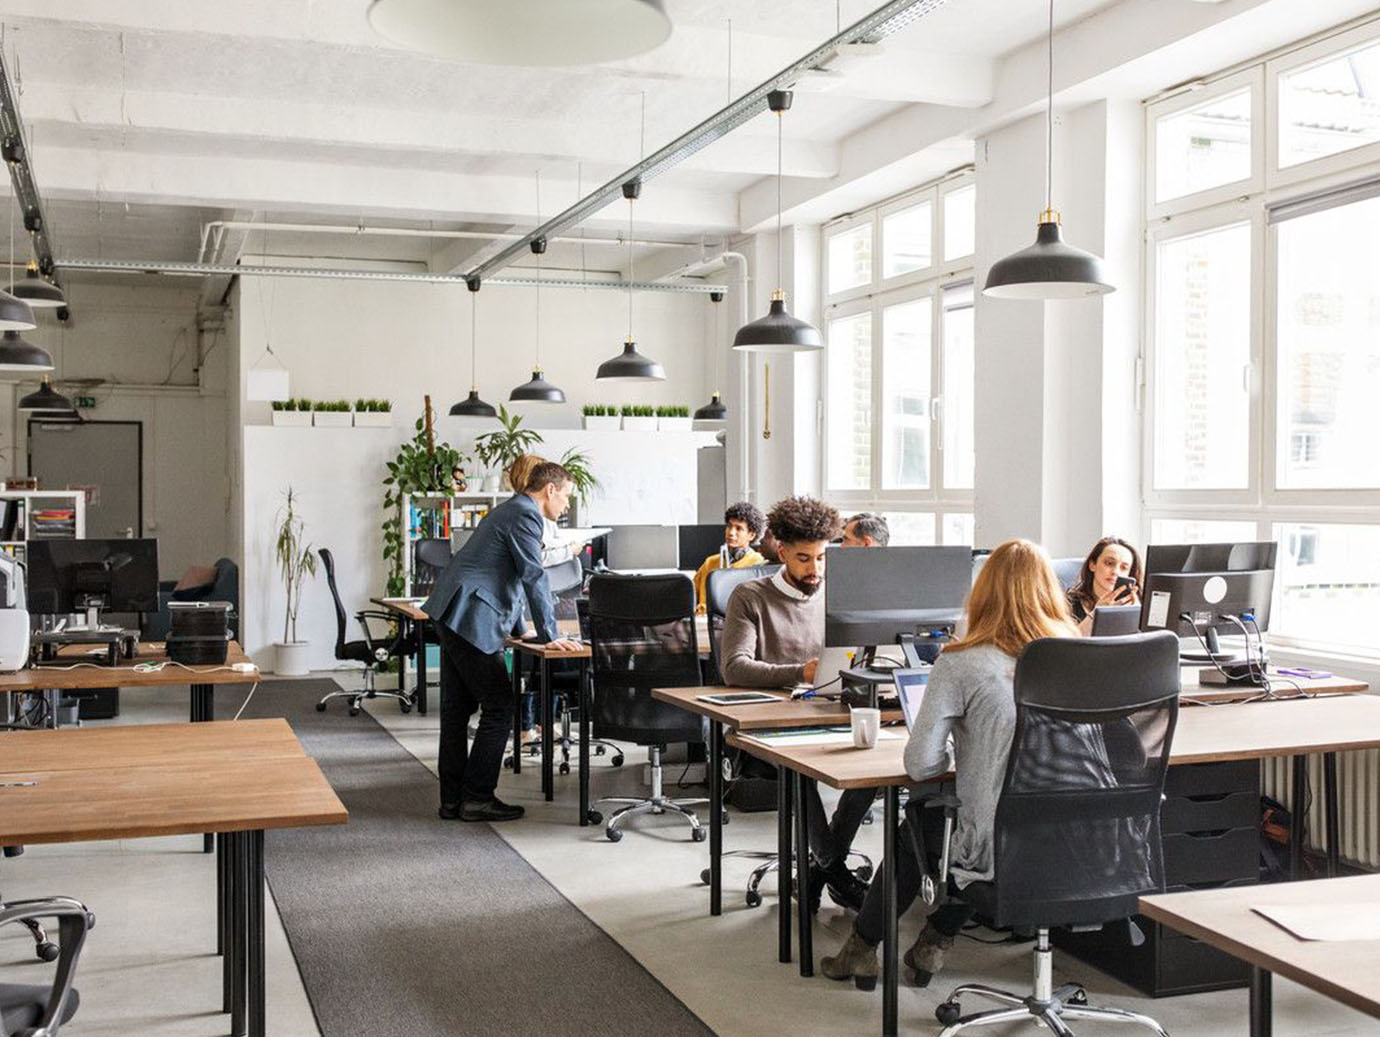 Businesspeople working in modern office space